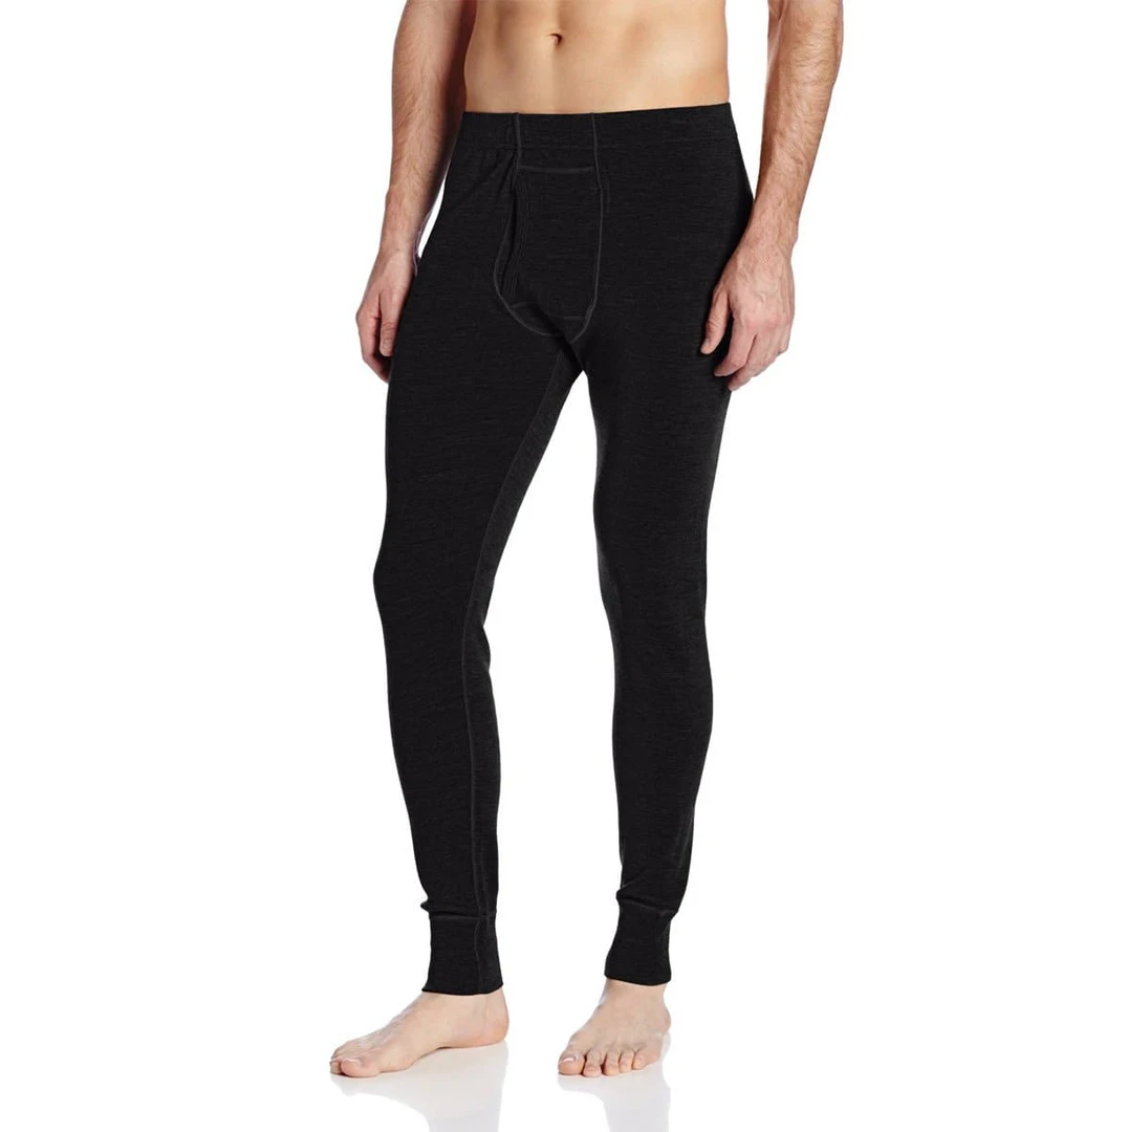 minus33 men's midweight wool bottoms in black on model front view